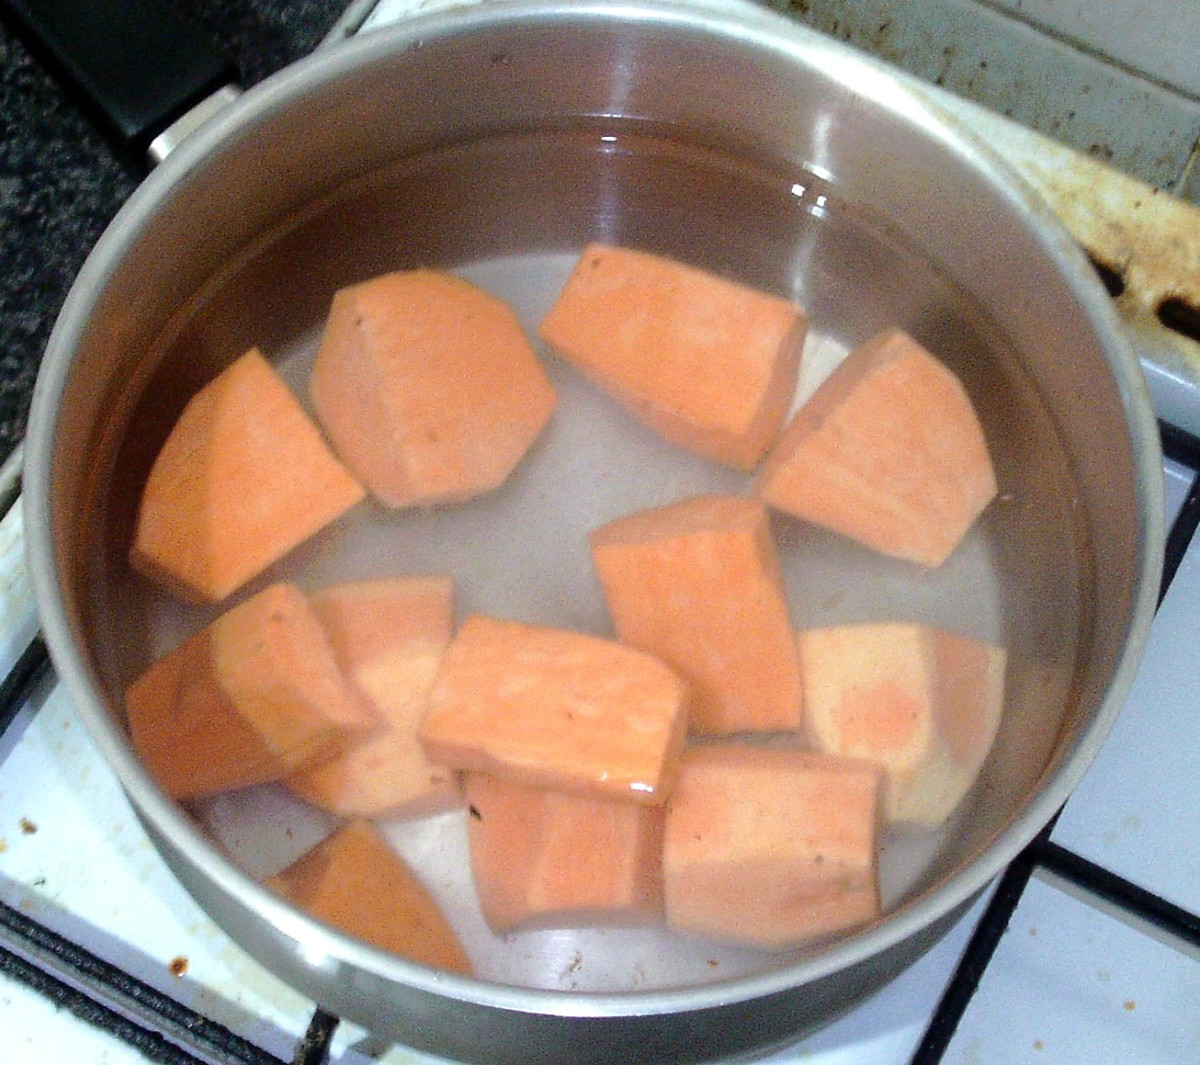 Chopped sweet potatoes ready for boiling